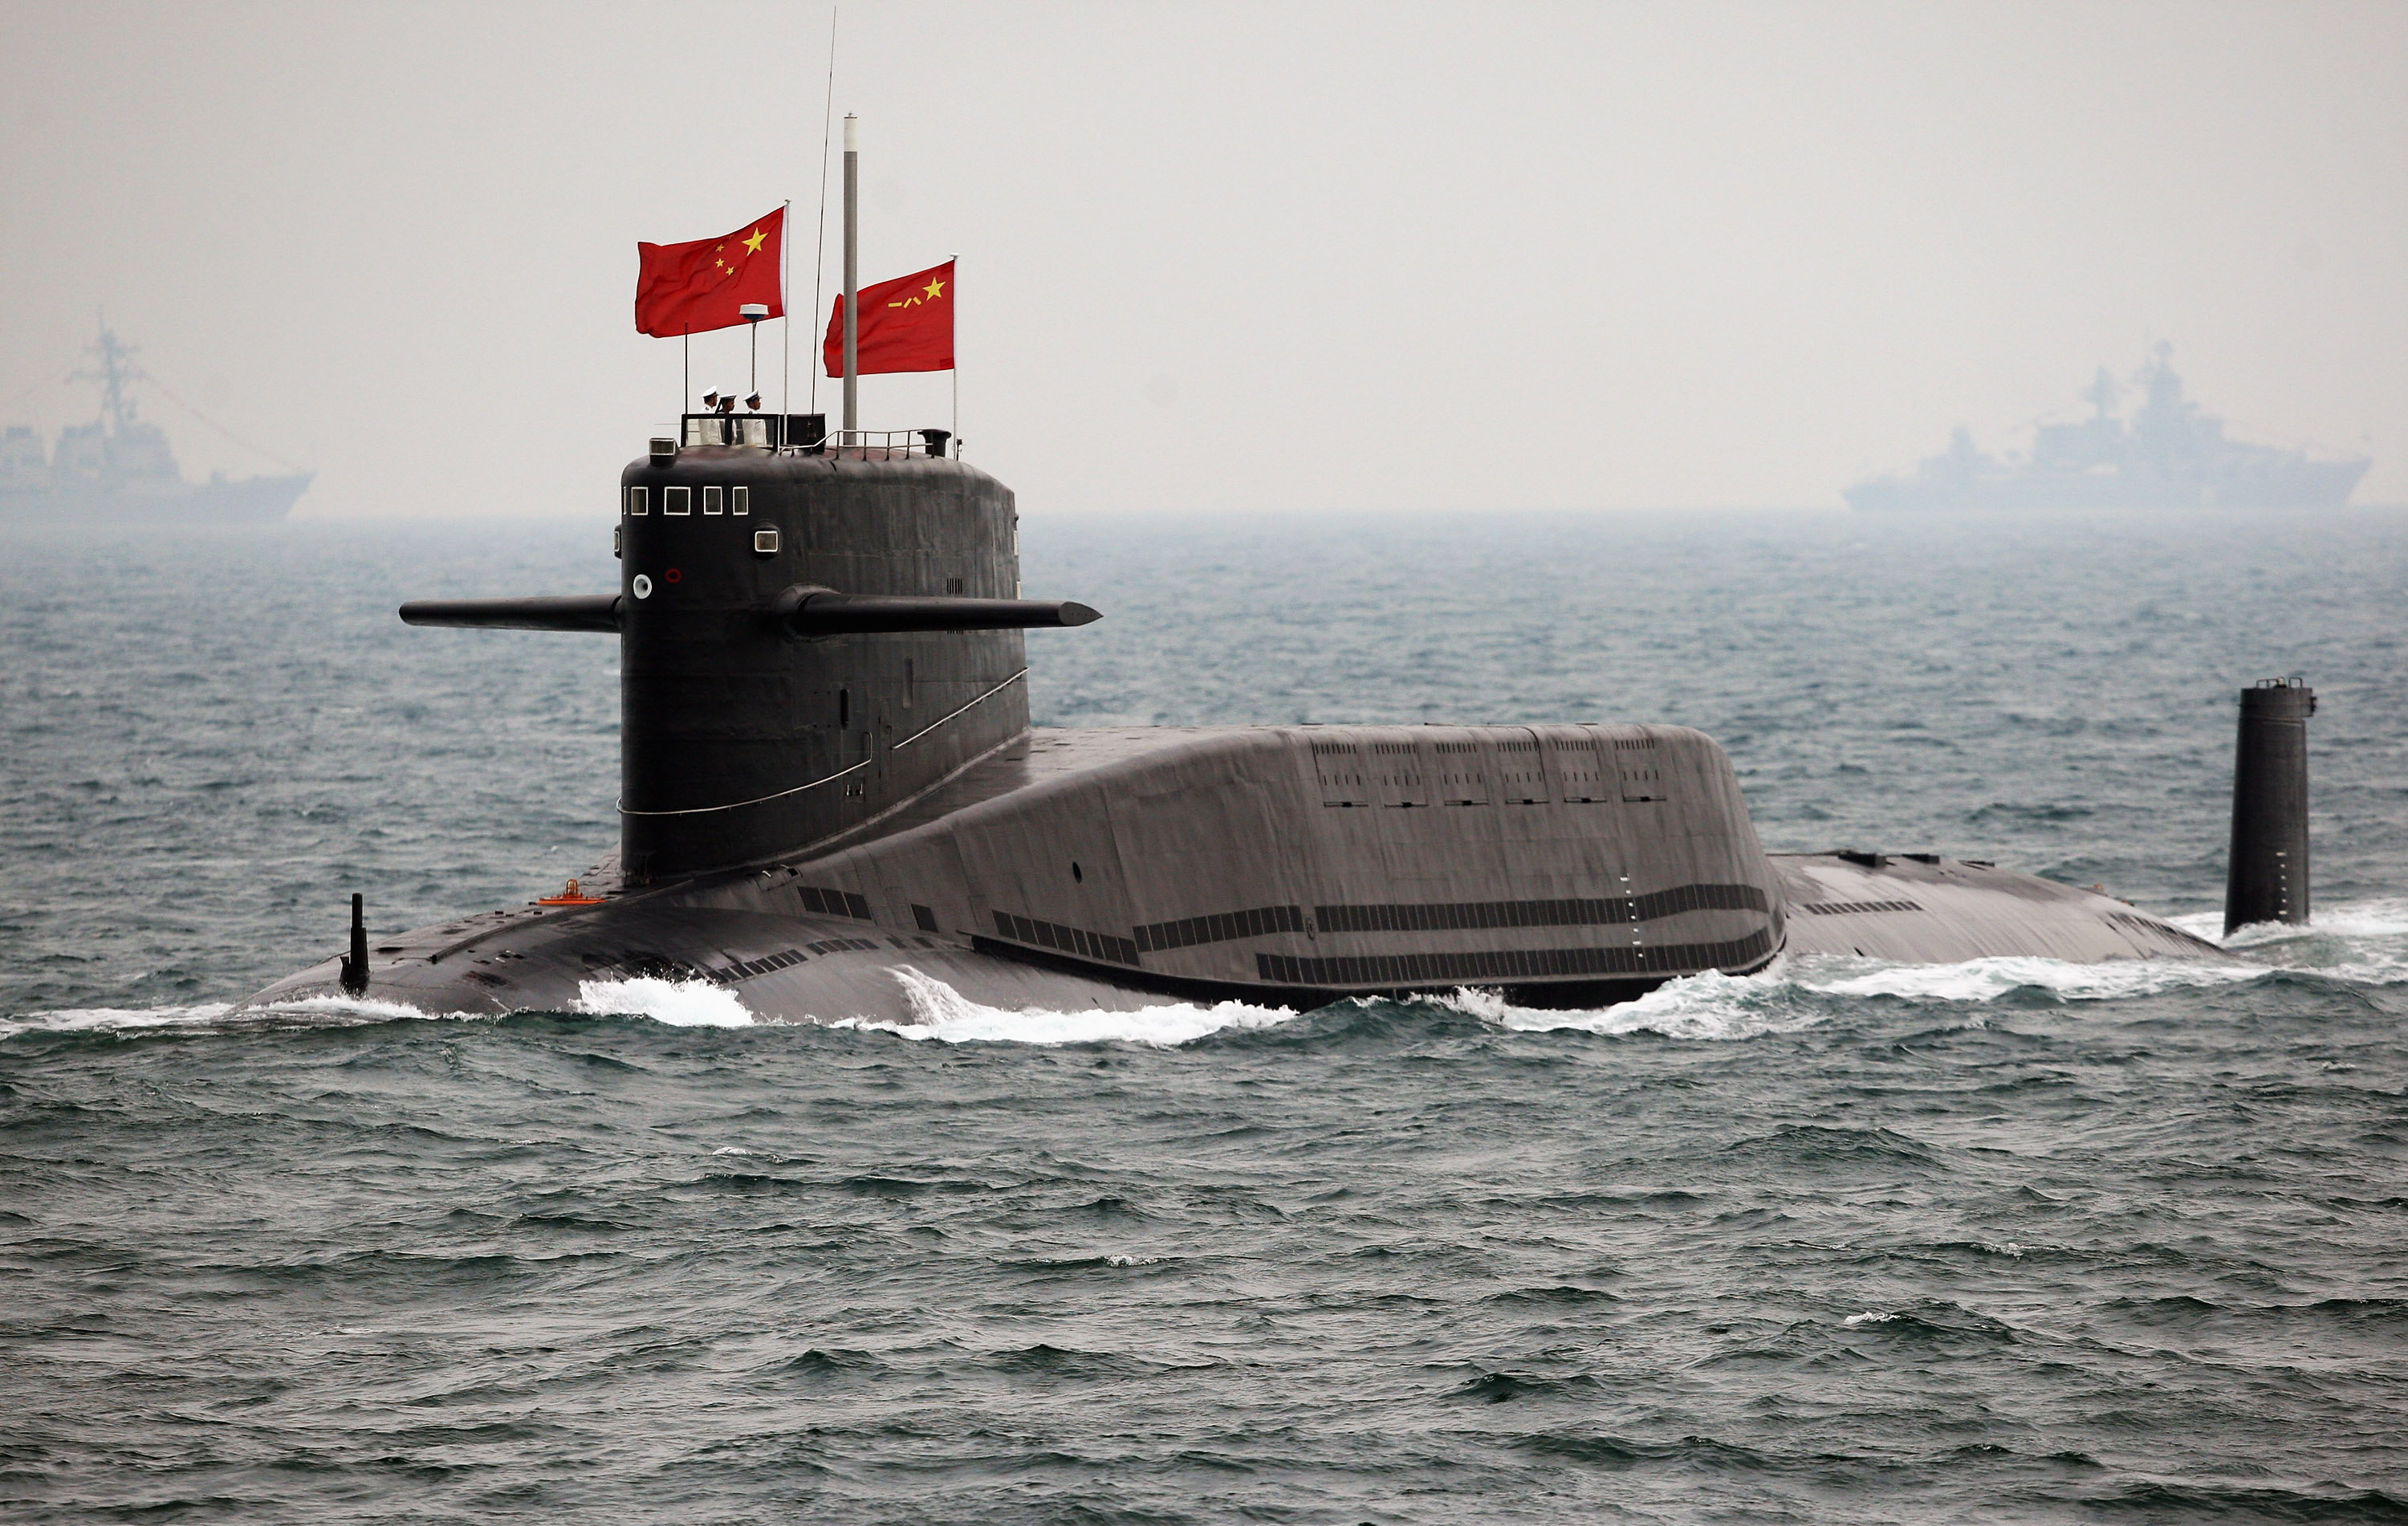 Russia & China to Hold Drills in South China Sea in September